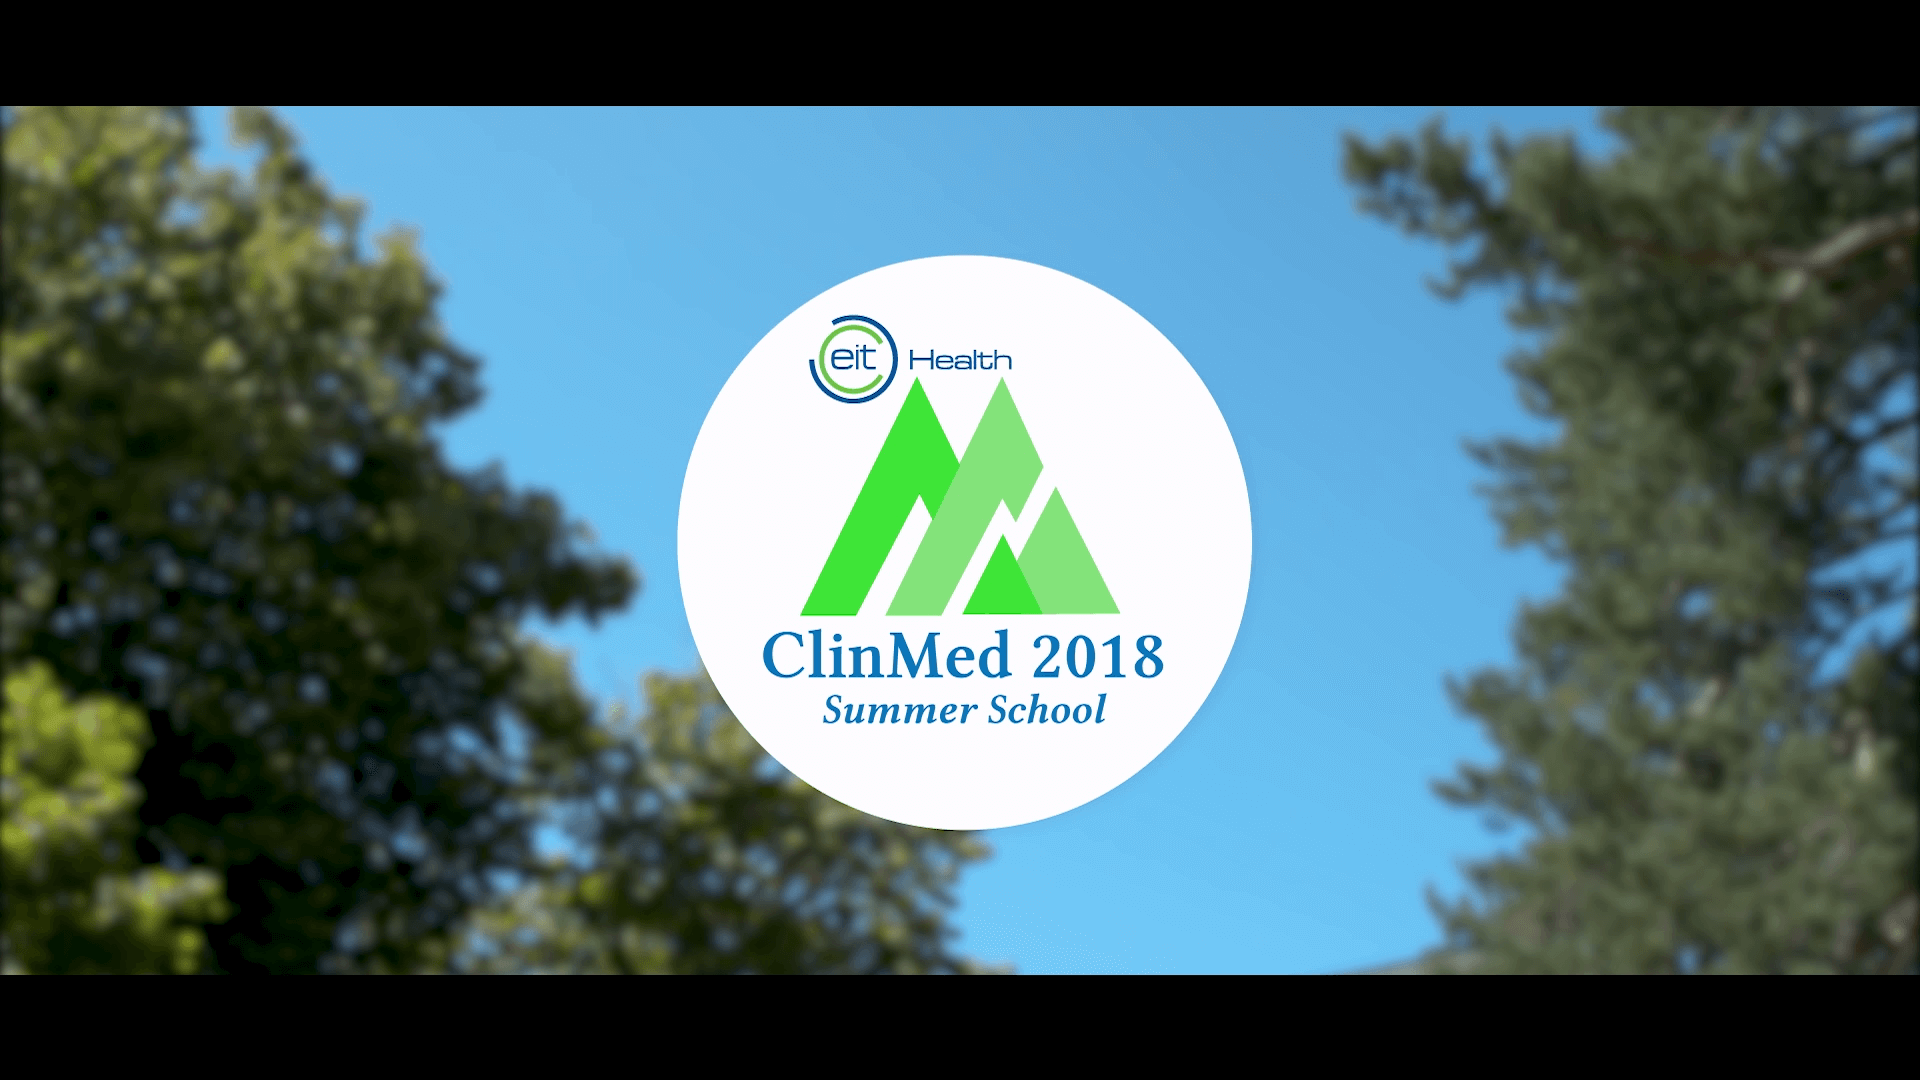 film clinmed 2018